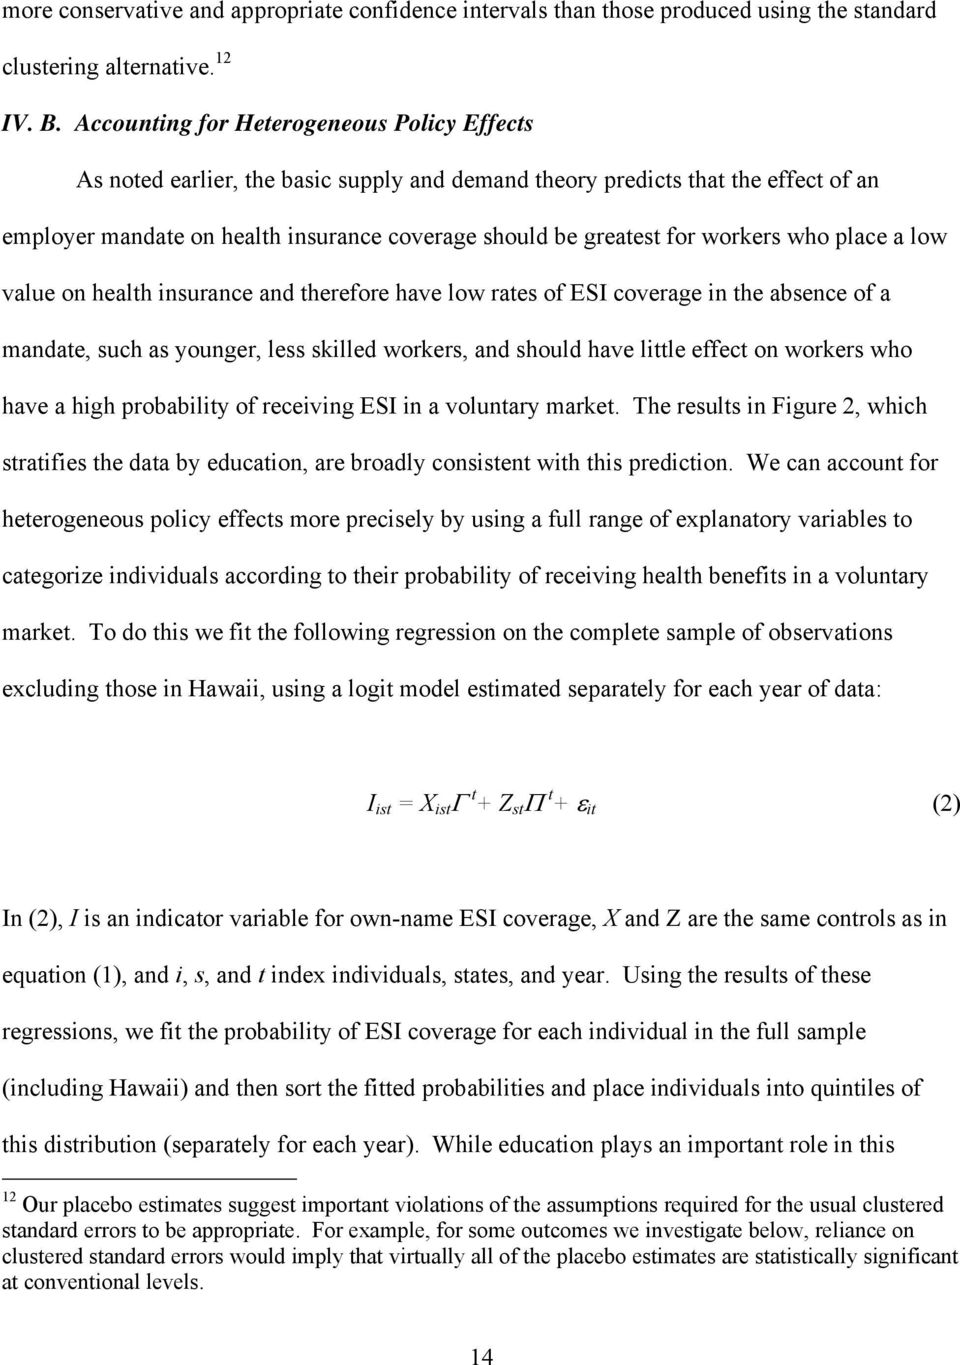 workers who place a low value on health insurance and therefore have low rates of ESI coverage in the absence of a mandate, such as younger, less skilled workers, and should have little effect on